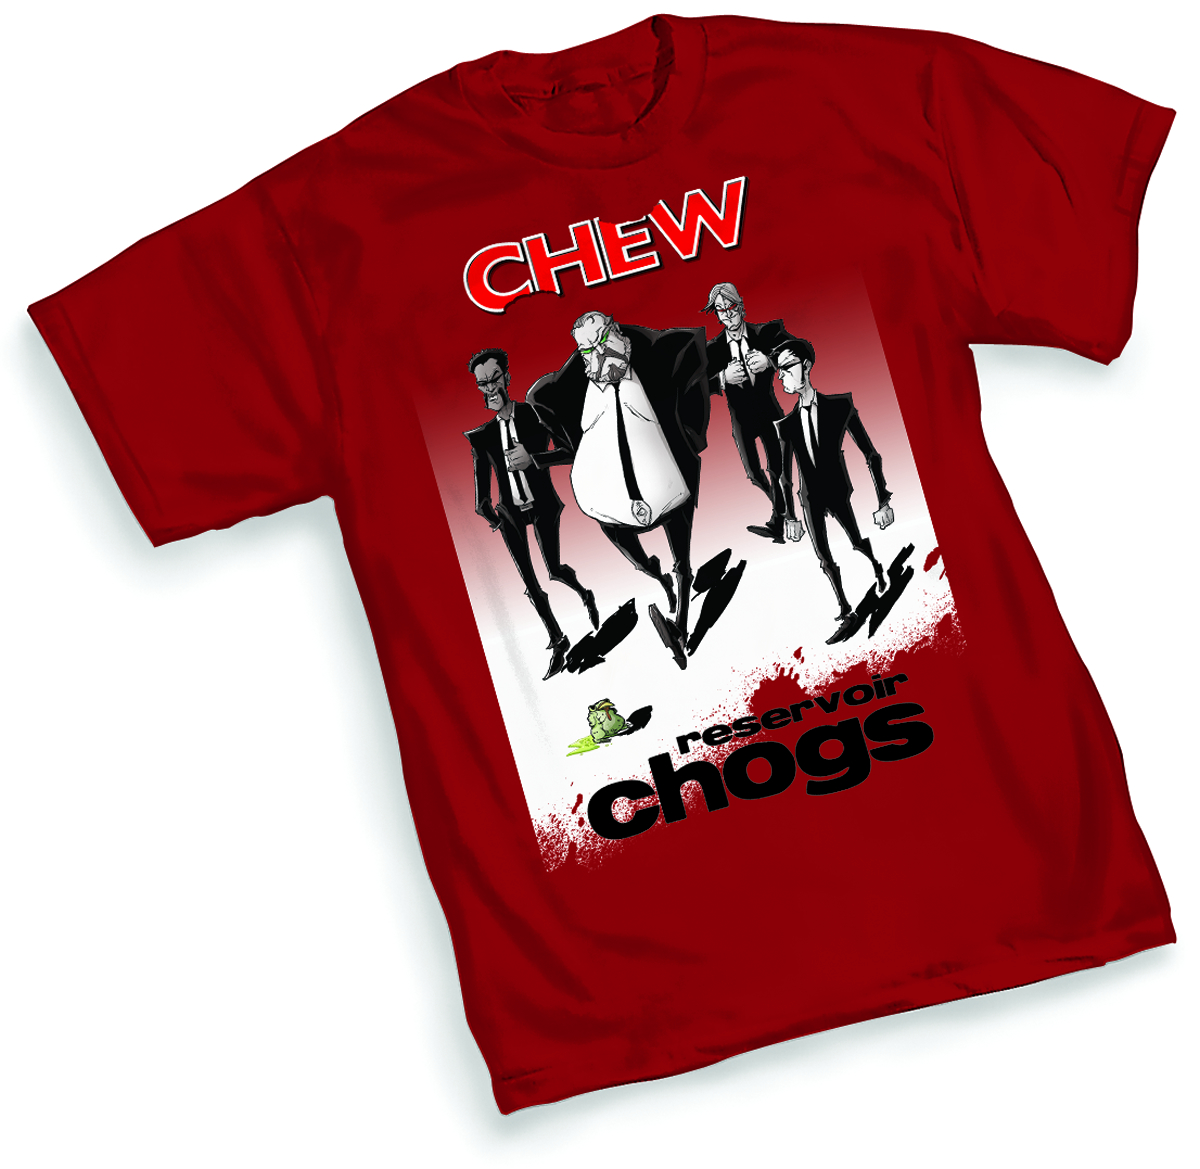 CHEW RESERVOIR CHOGS BY GUILLORY T/S XXL